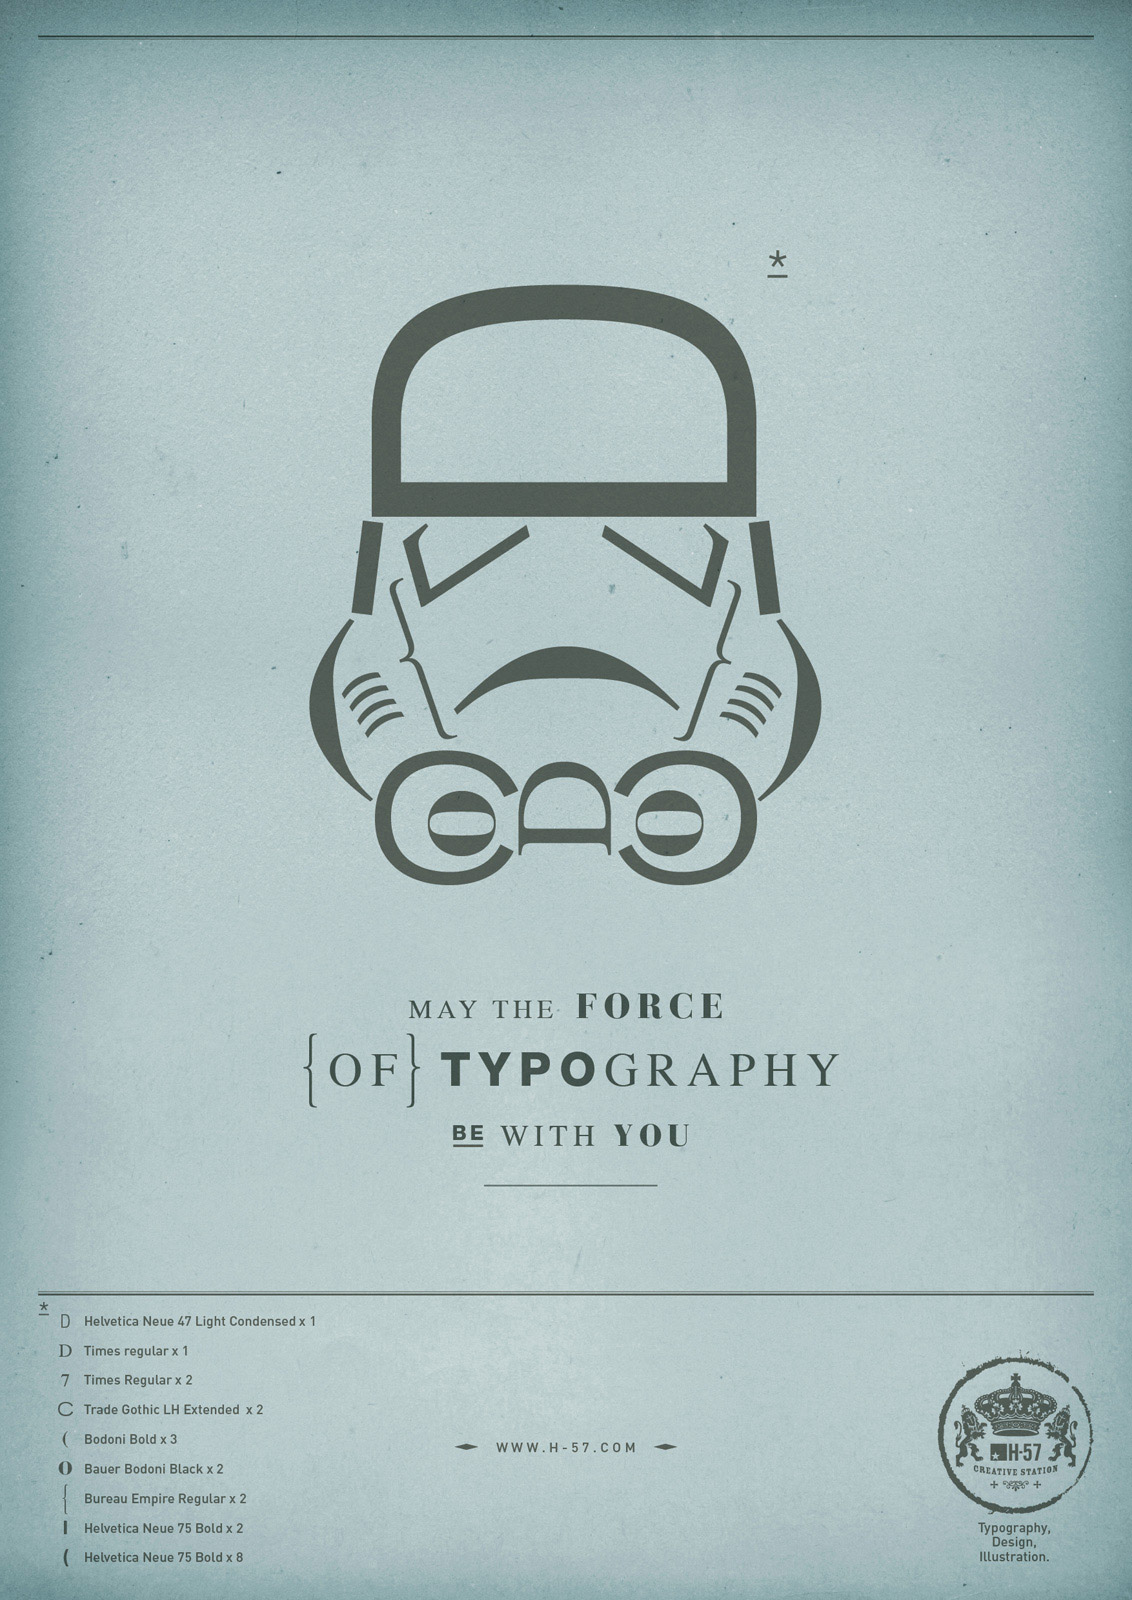 may-the-force-of-typography-be-with-you-storm-trooper